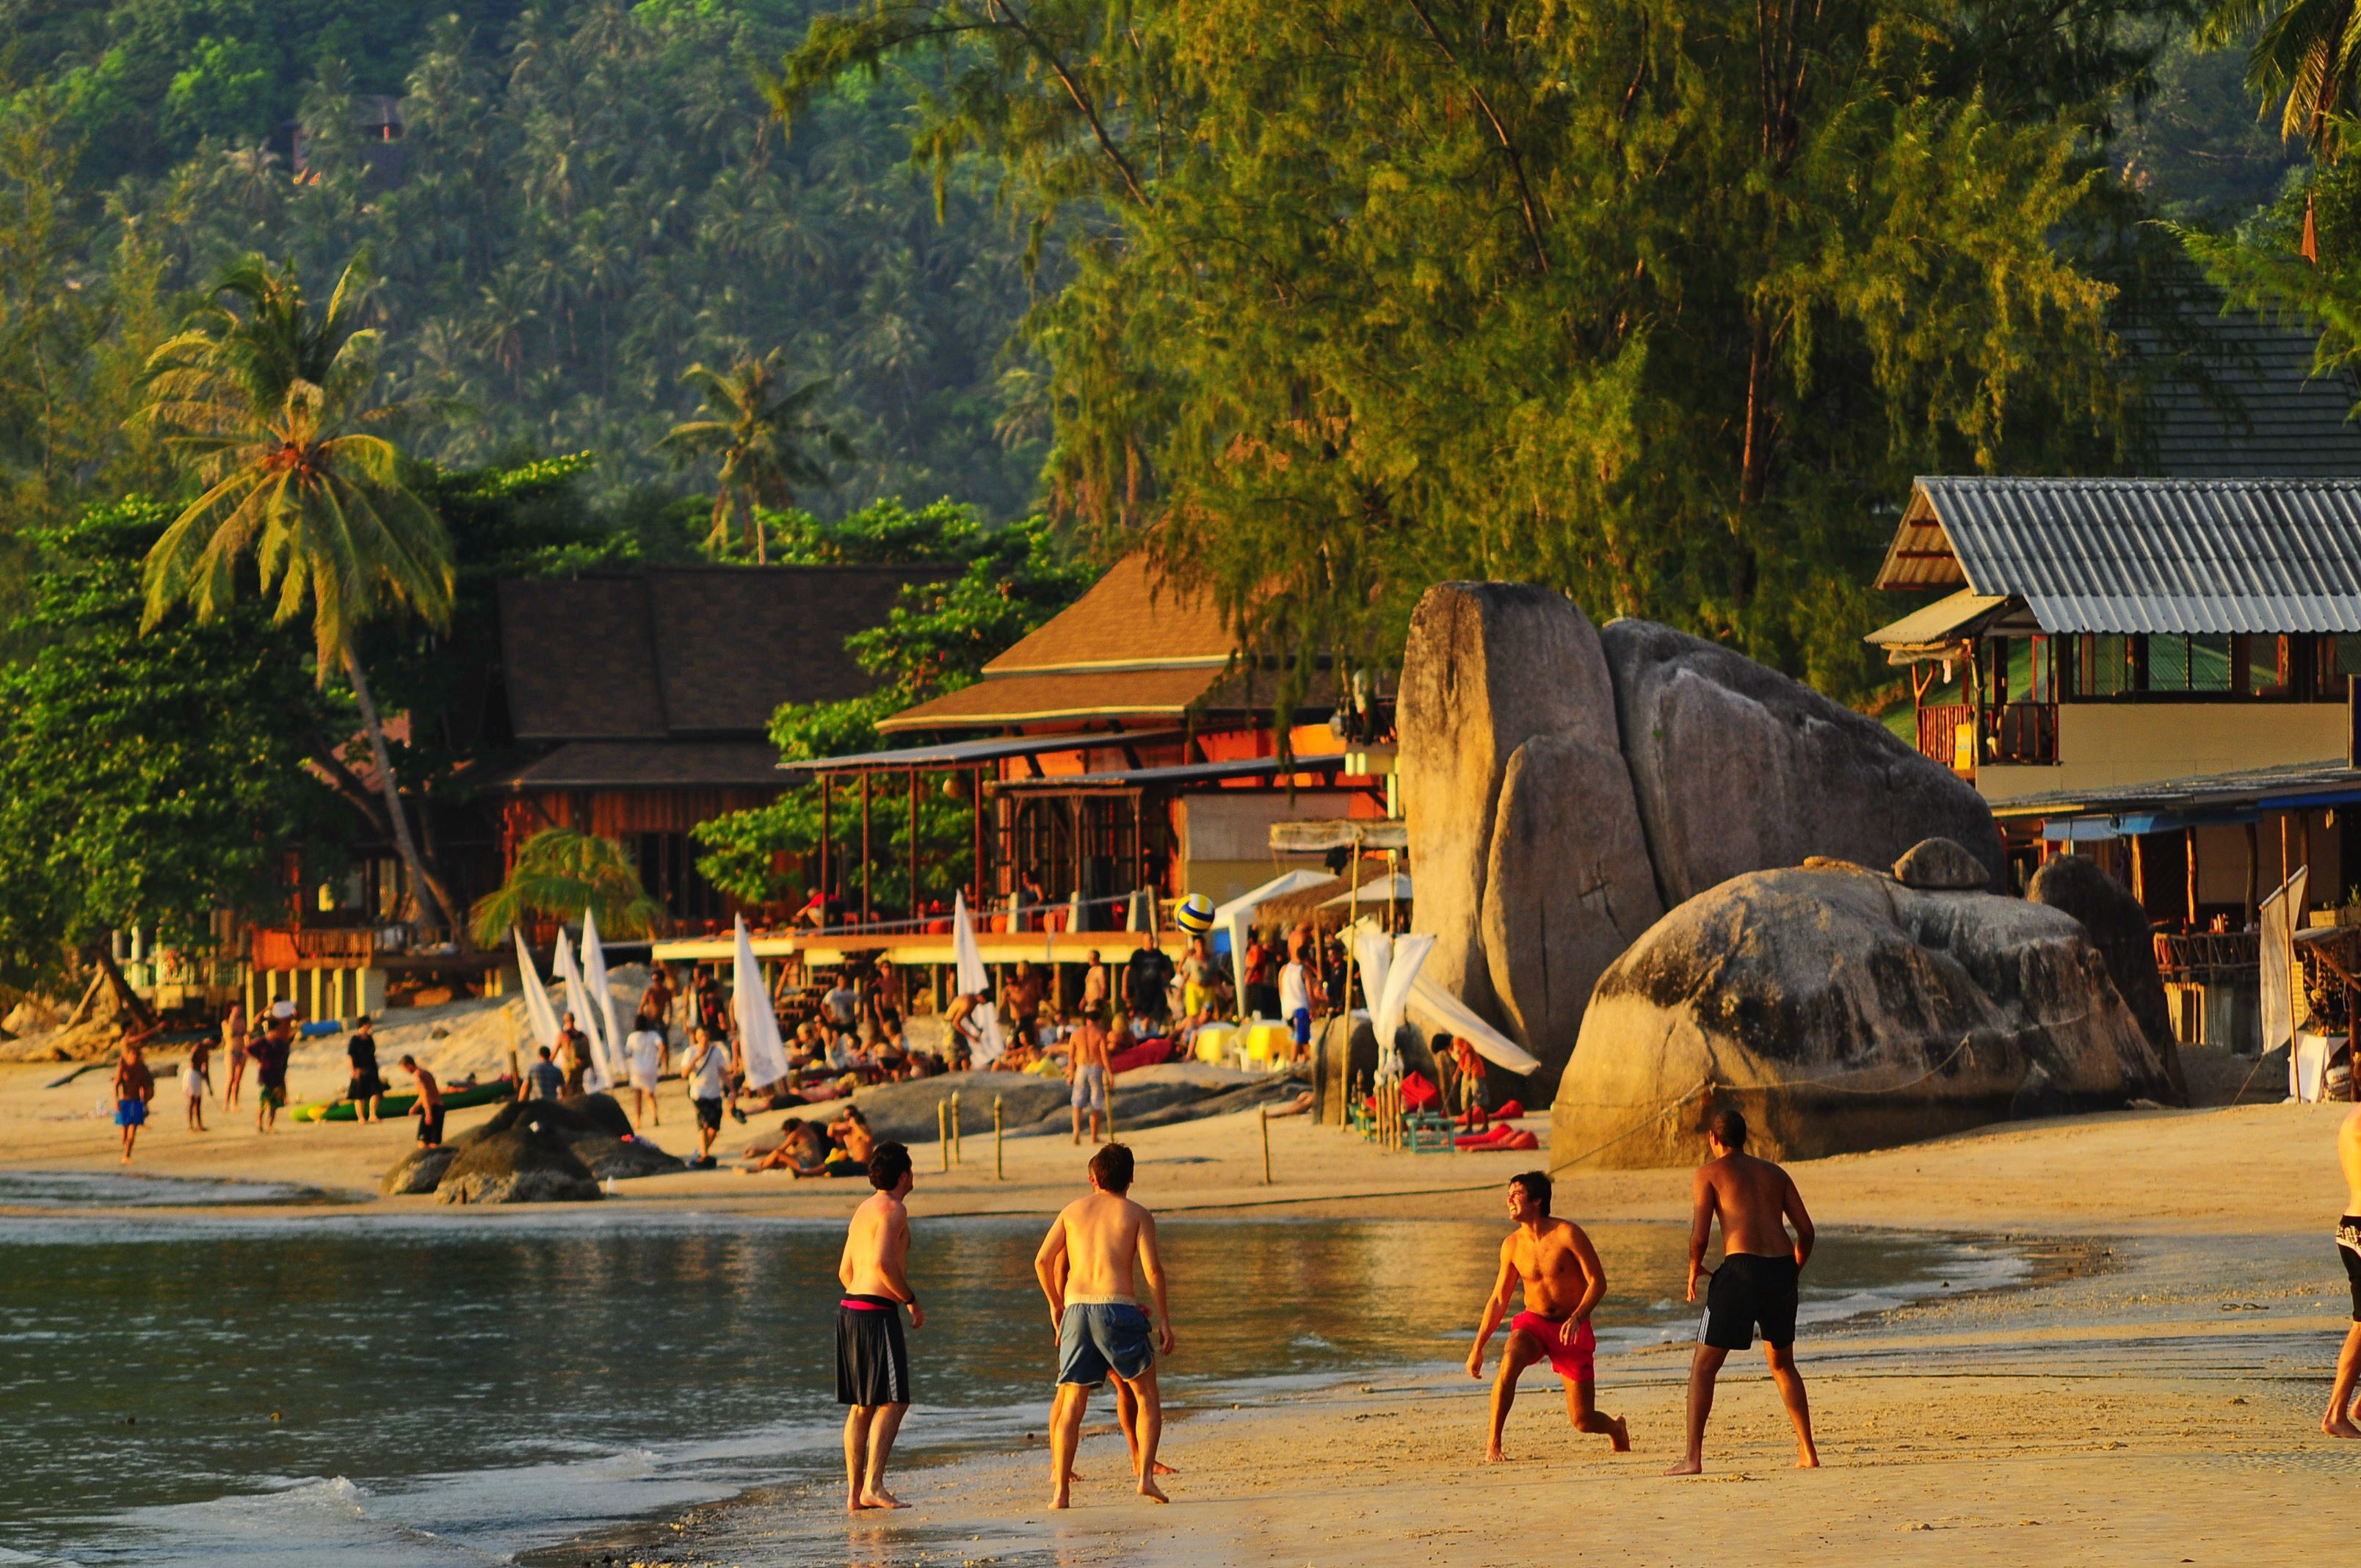 Sairee Beach Koh Tao Thailand When The Tide Is Low S Sandy Flats Make A Good Sports Arena